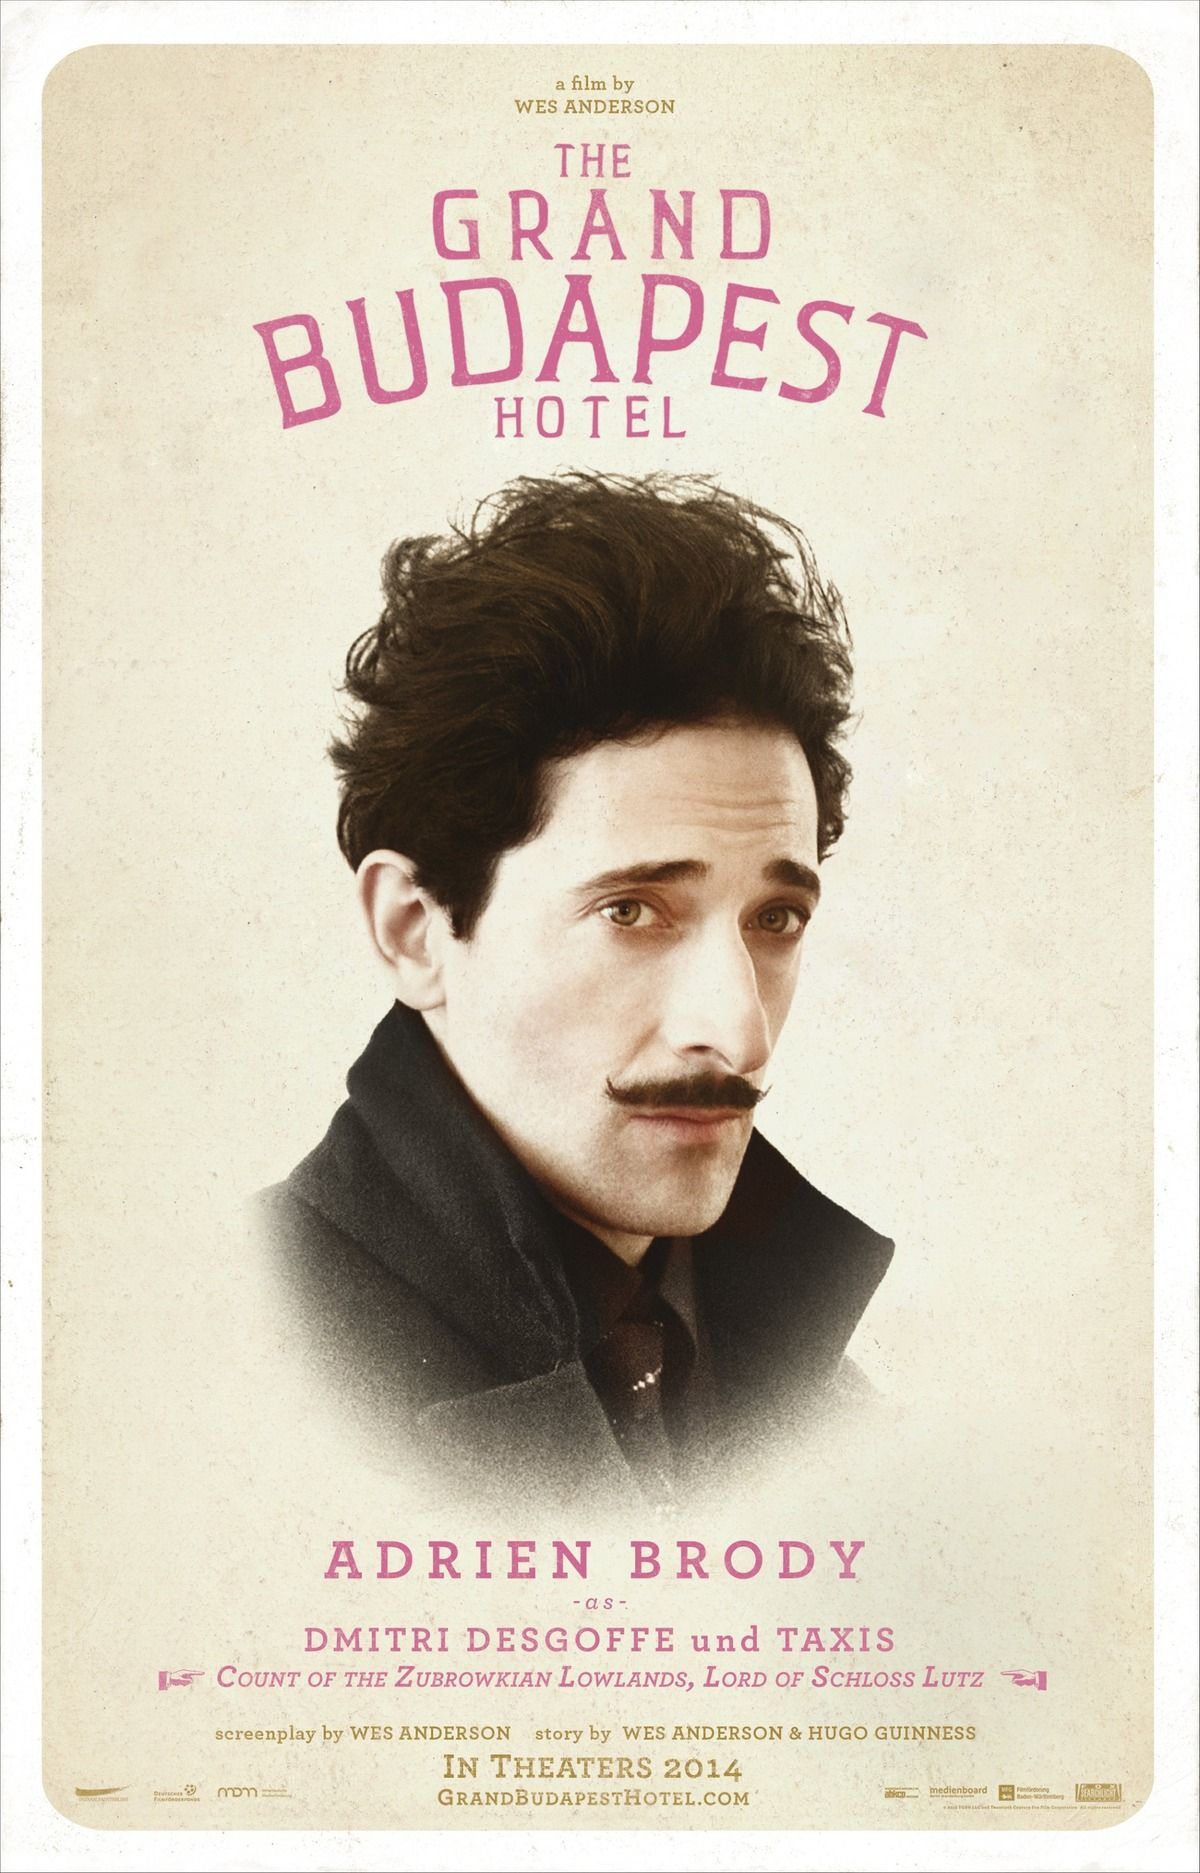 The Grand Budapest Hotel - Adrien Brody | #movieposter #design